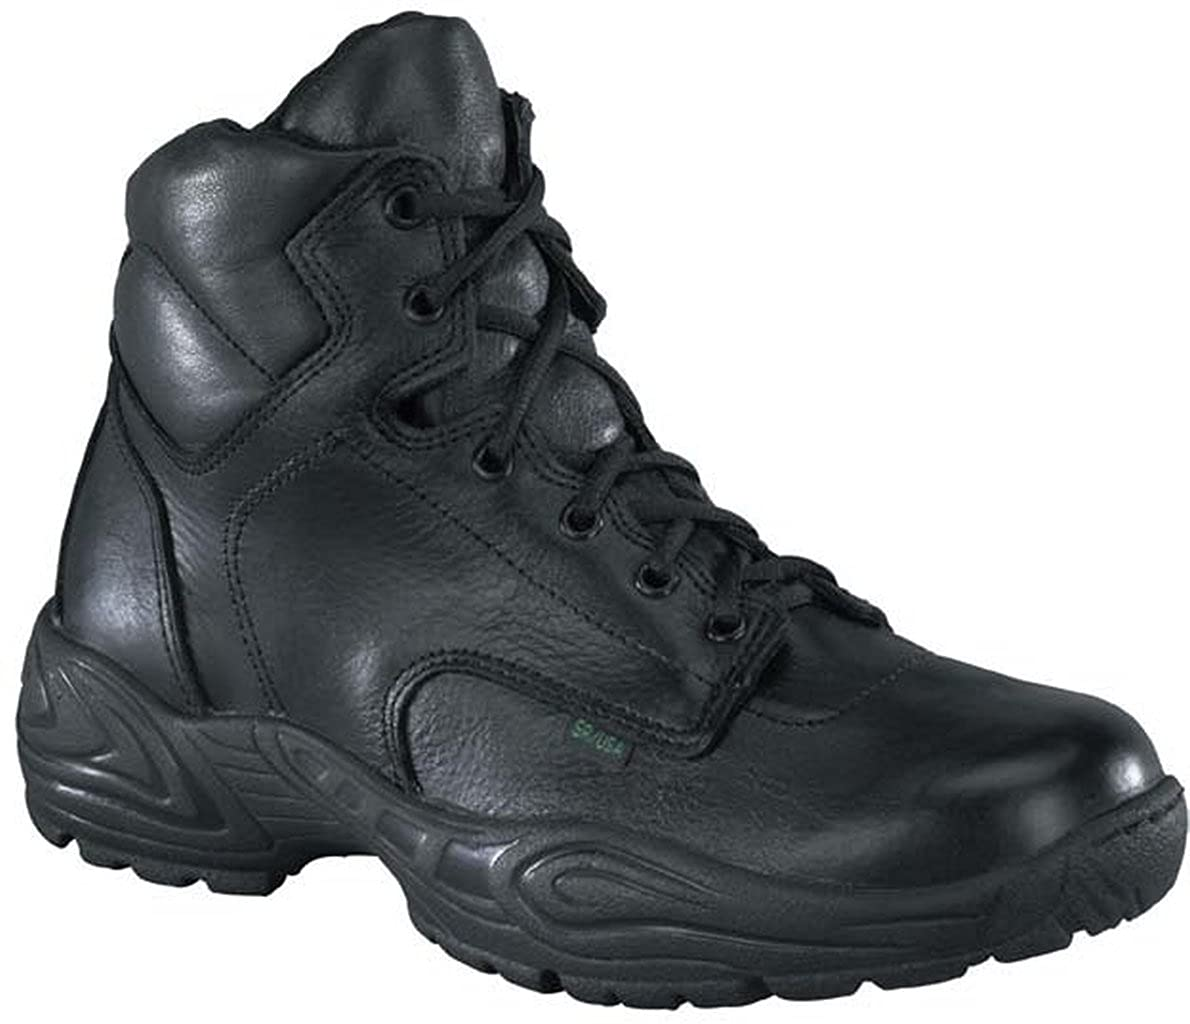 Cp8515 Reebok Mens 6 Postal Express Work Boot USPS Approved